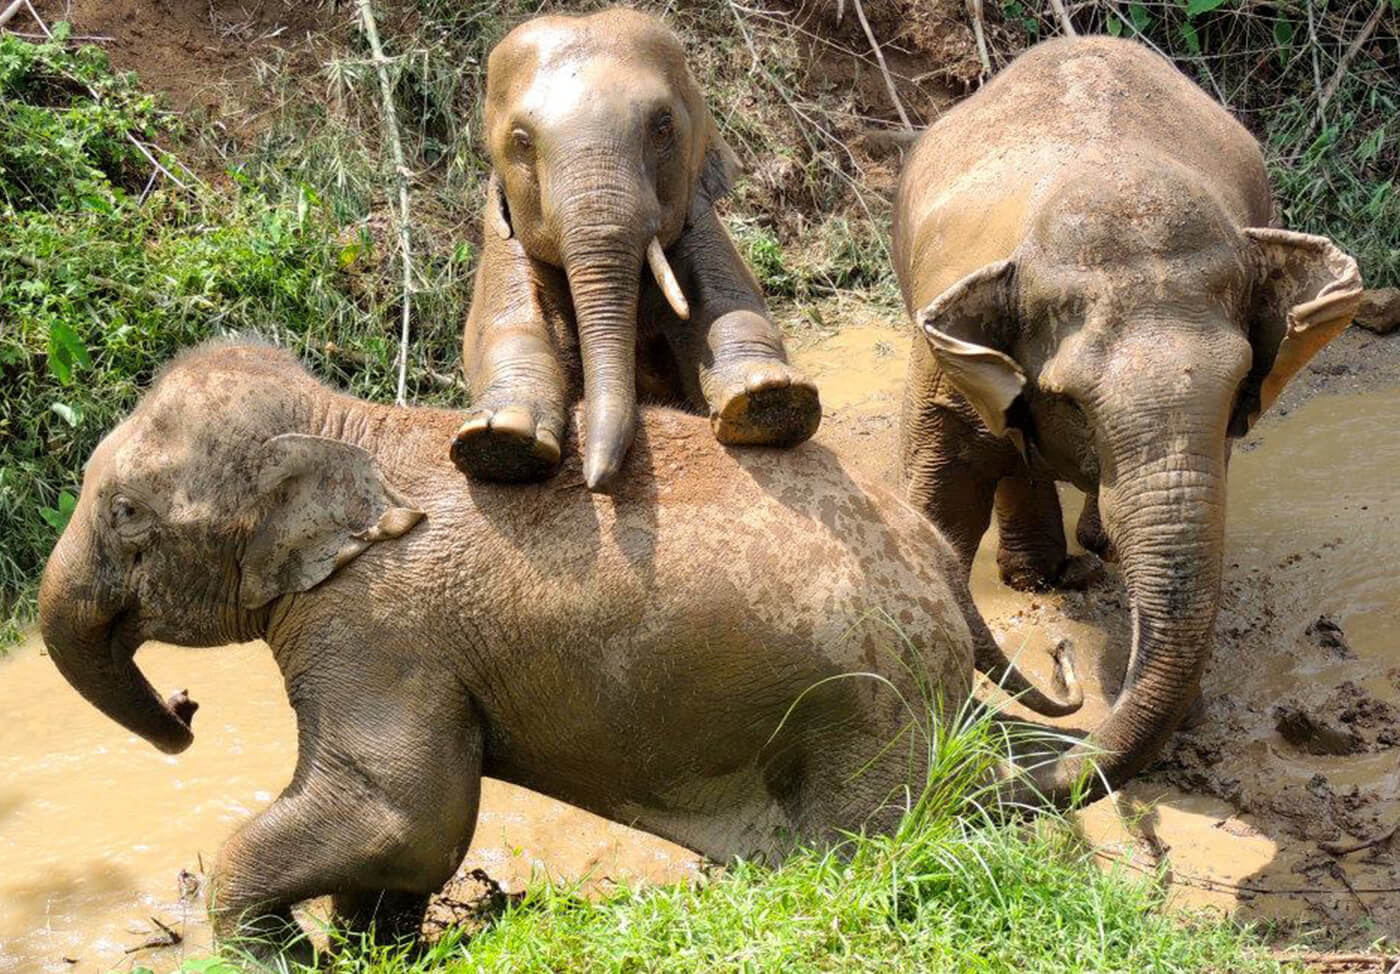 Elephant-Jungle-Sanctuary-Phuket-2